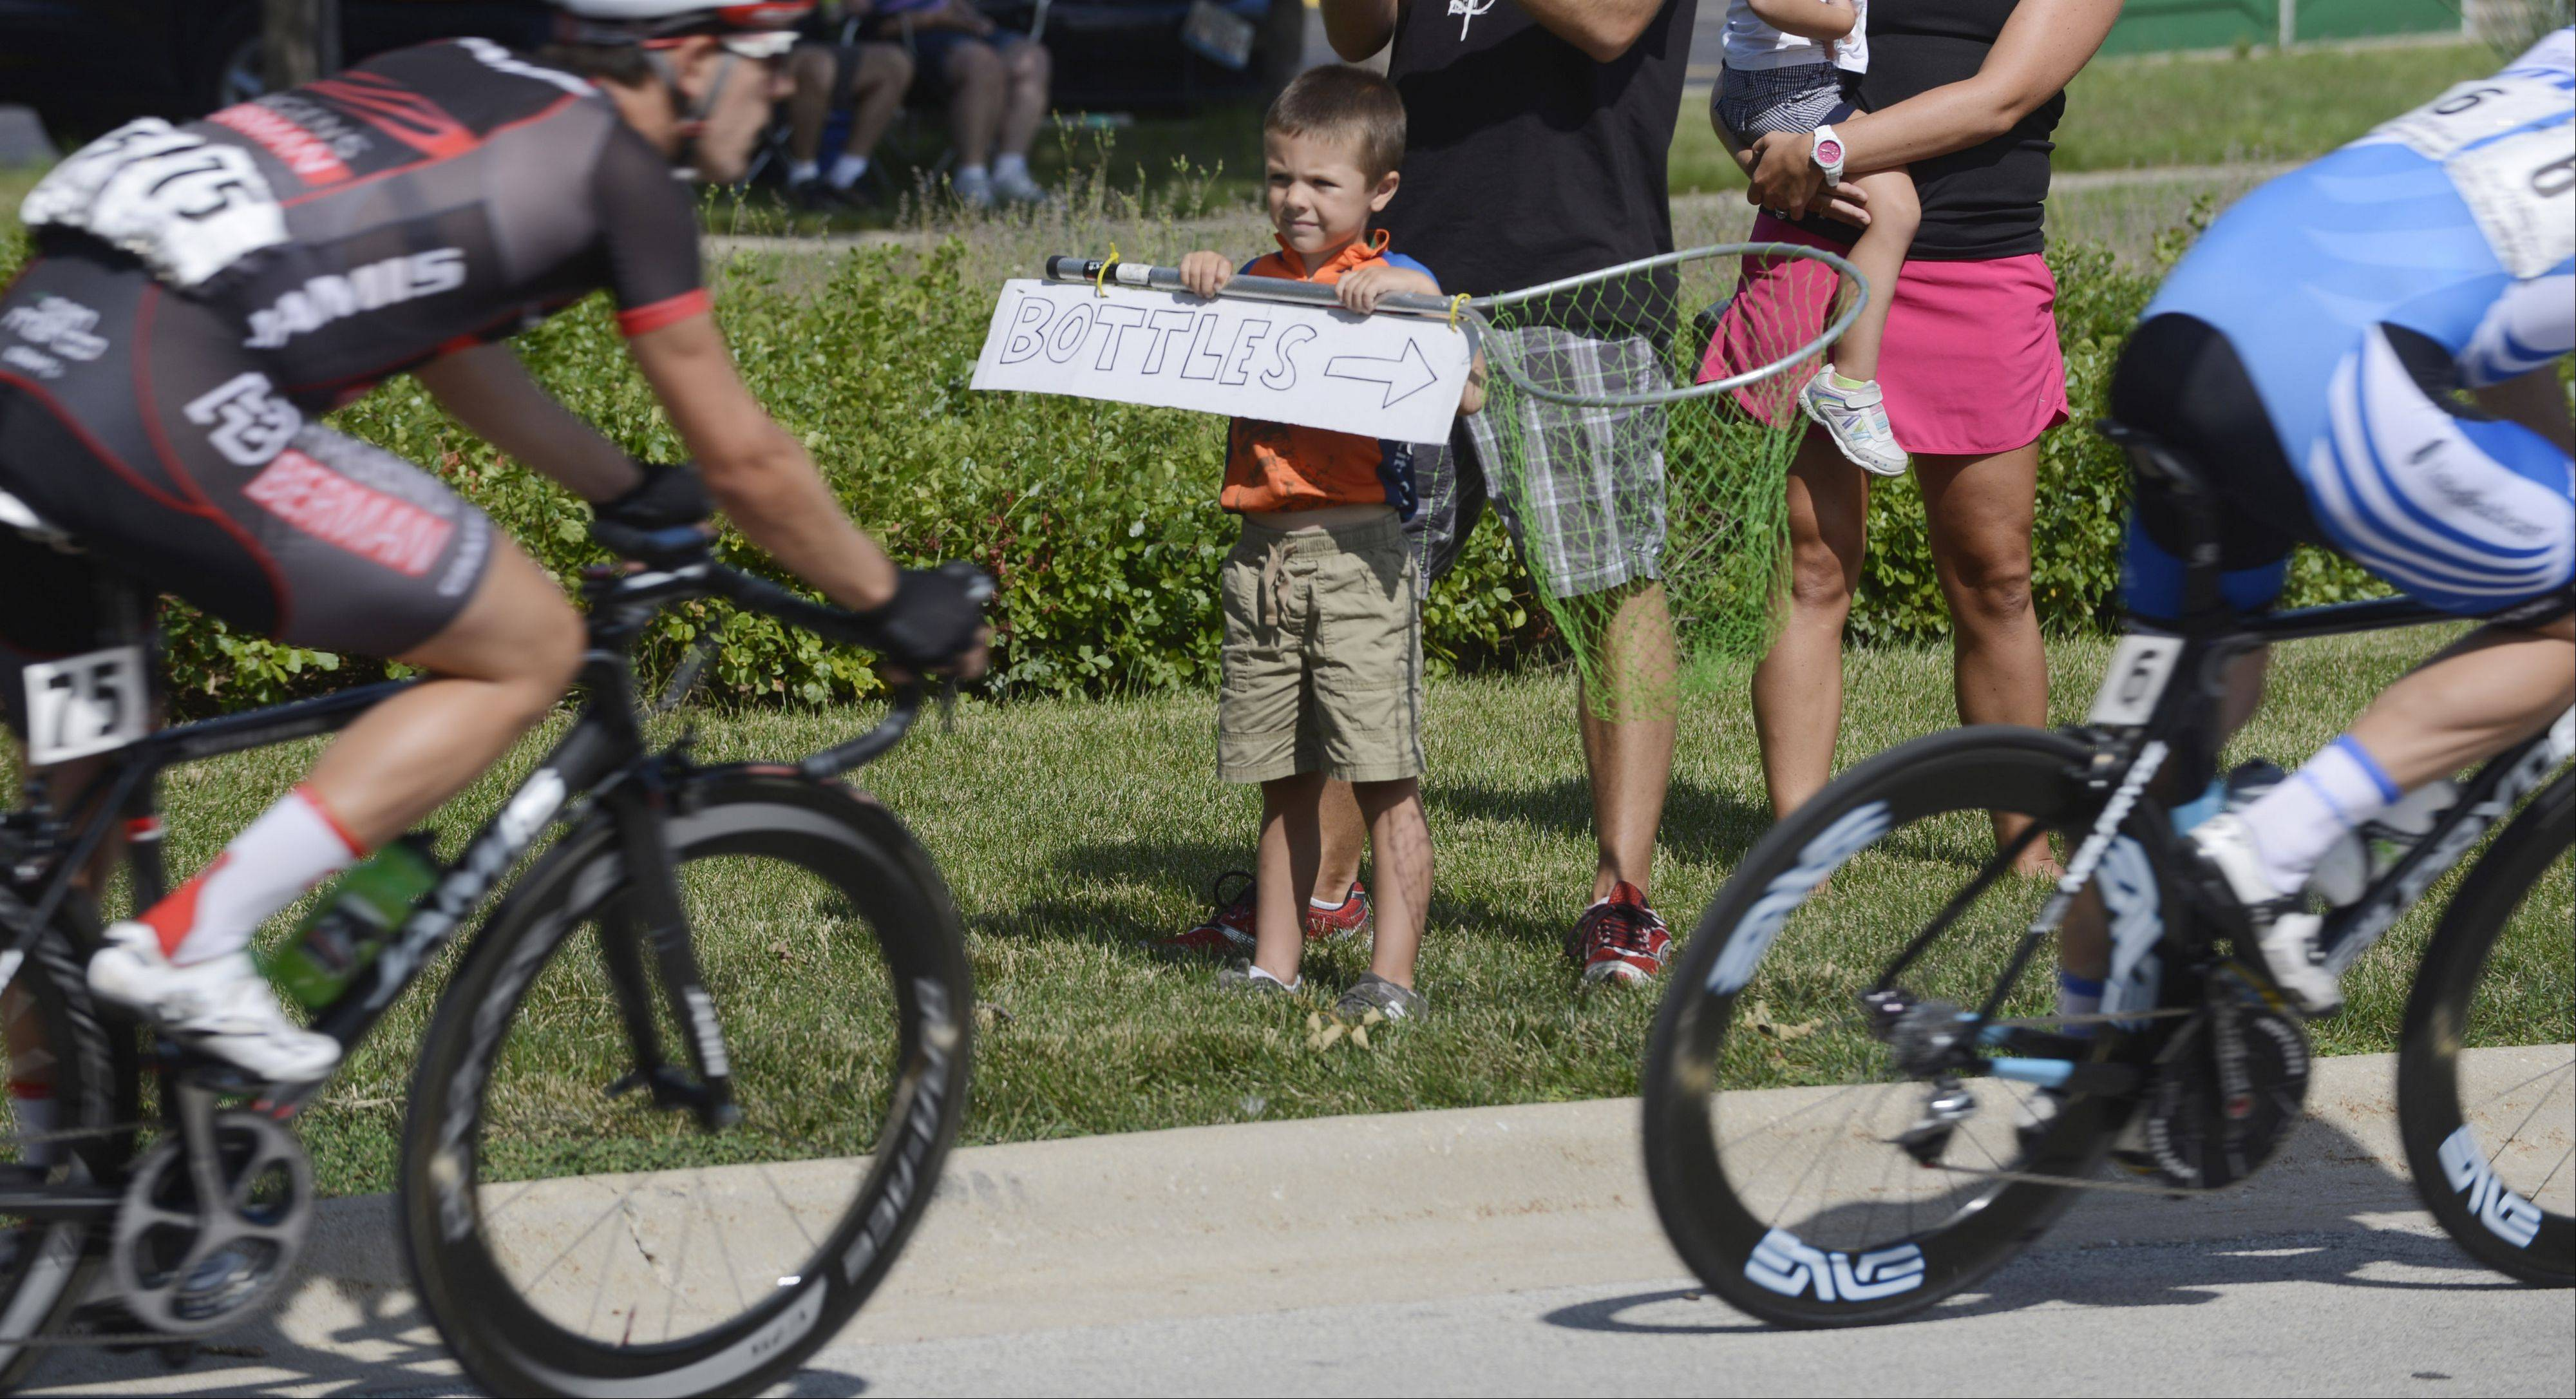 Sean McCammon, 5, of Minooka holds up a net and sign for rider's water bottles as cyclists compete in the Gullo International Pro Men Circuit Race, Stage 3, during the Tour of Elk Grove Sunday.